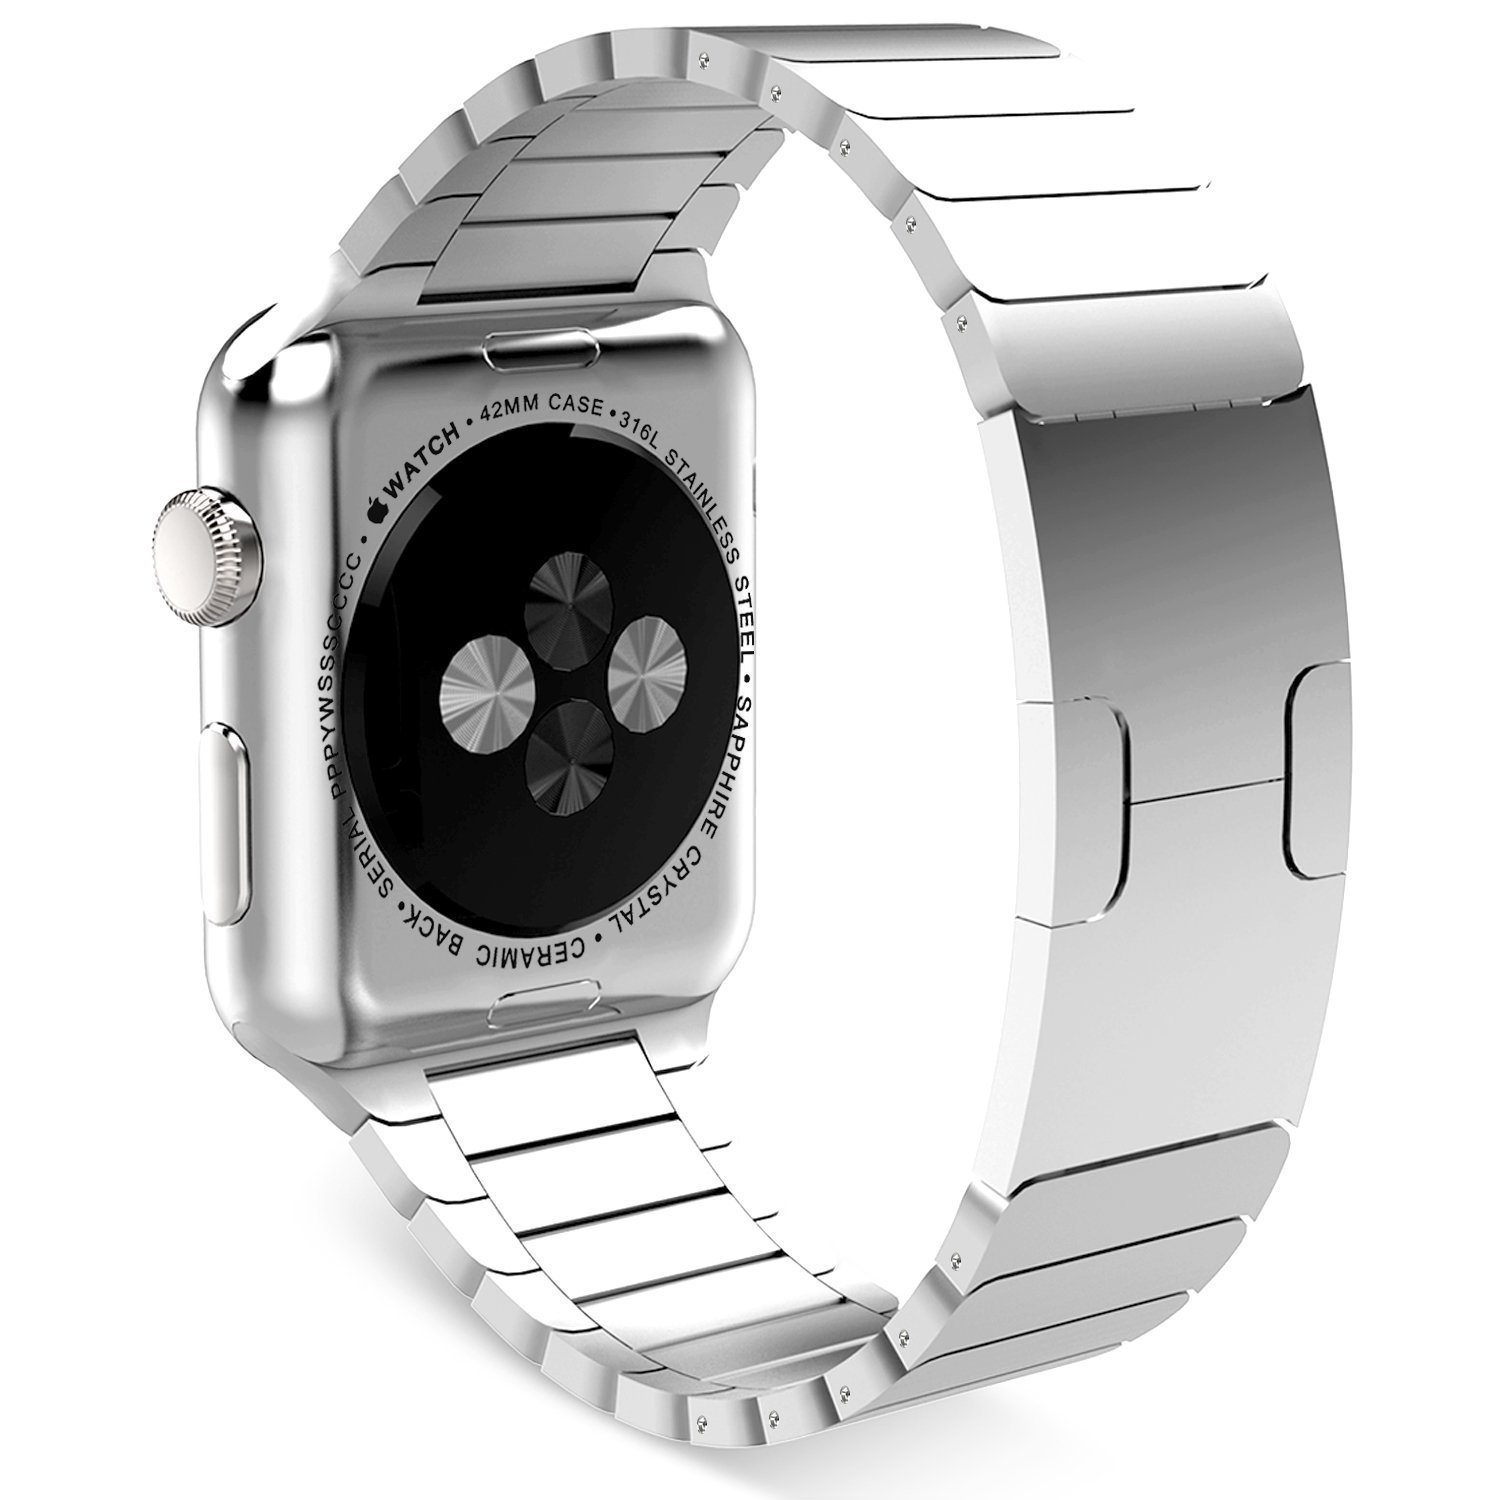 Apple Watch Band, Clebsch Stainless Steel Replacement Smart Watch Band Link Bracelet with Double Button Folding Clasp for Apple Watch All Models